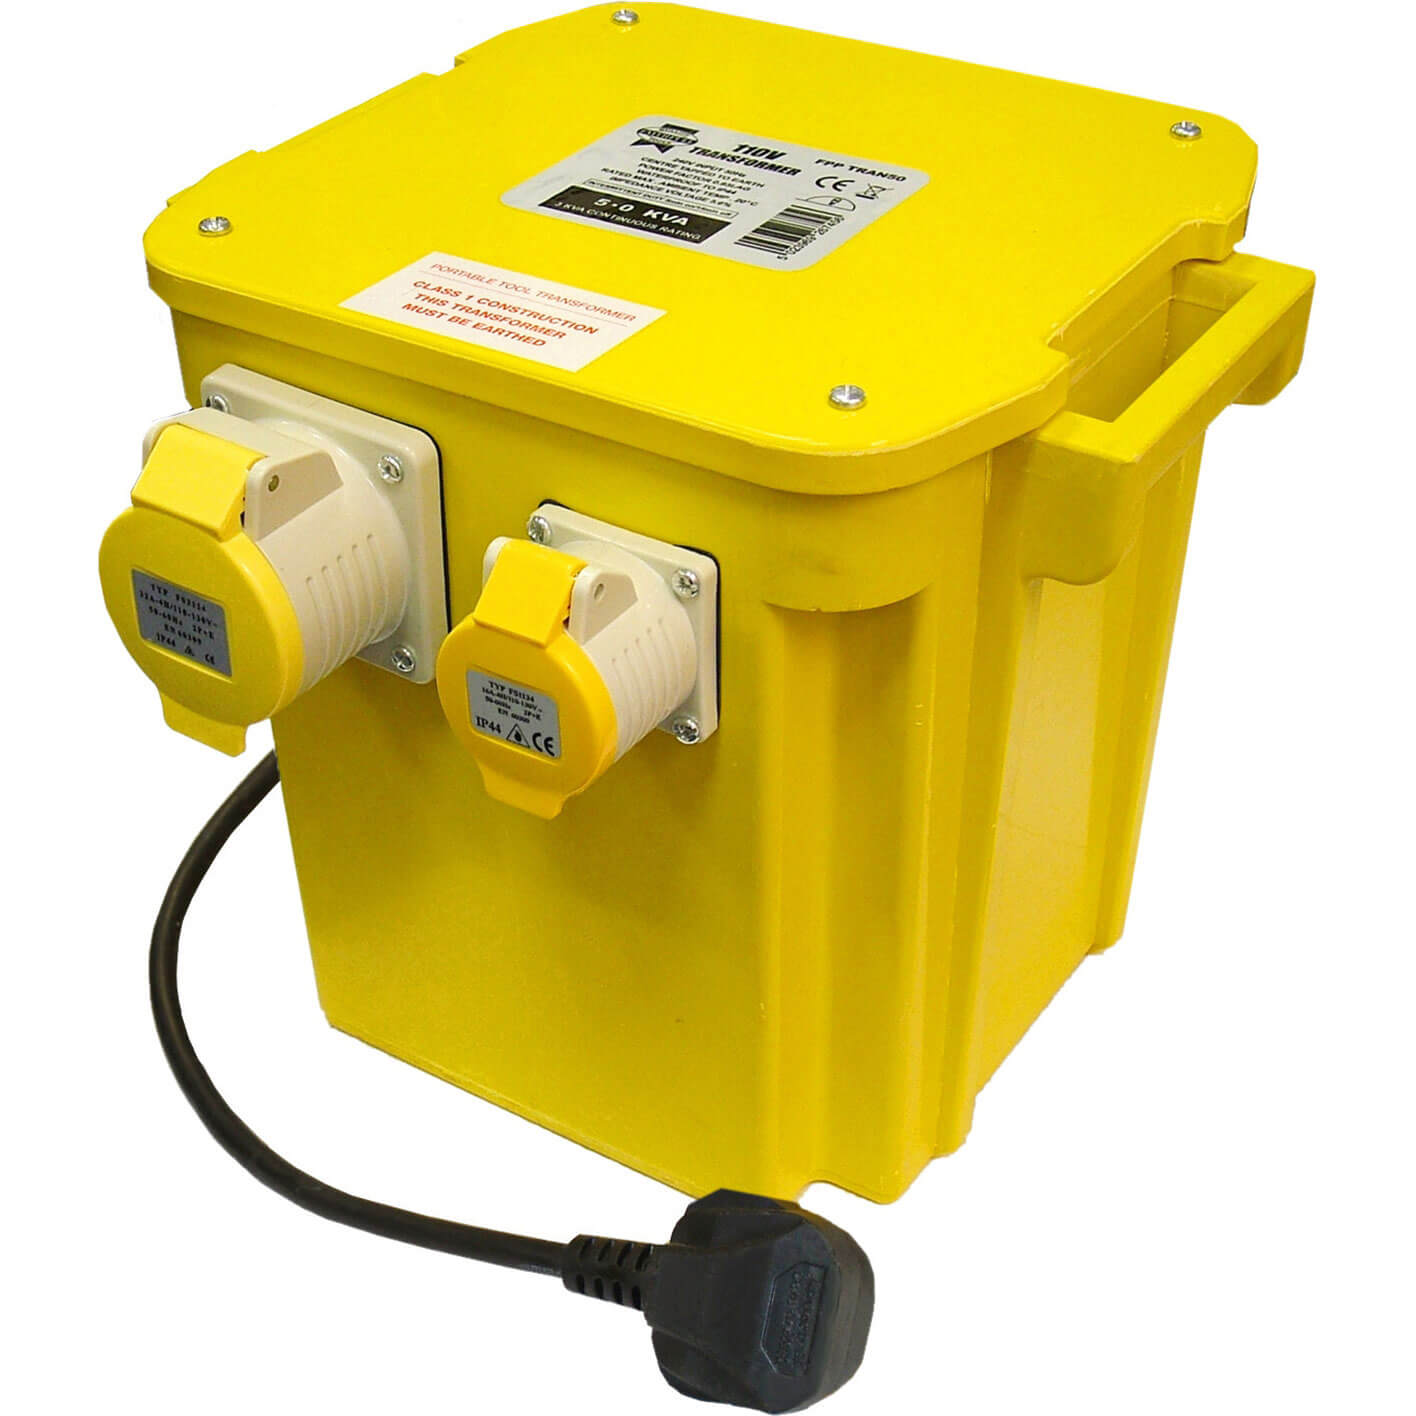 Image of Faithfull 110v Portable Transformer 5Kva 240v